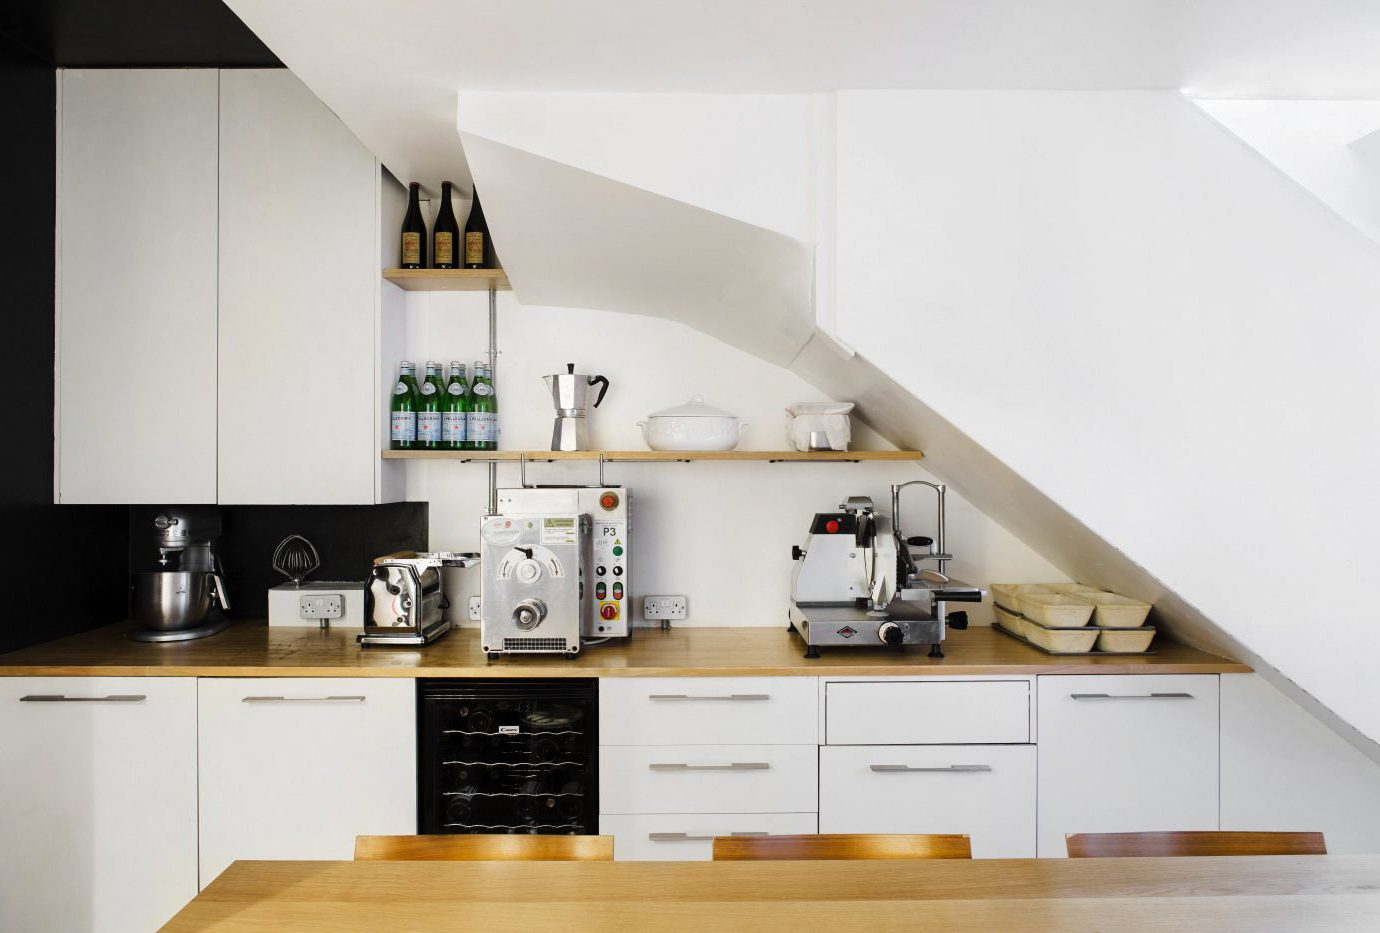 Offbeat Trip Ideas indoor wall Kitchen countertop ceiling interior design cuisine classique product design furniture interior designer angle appliance loft cabinetry shelf counter product wood kitchen appliance